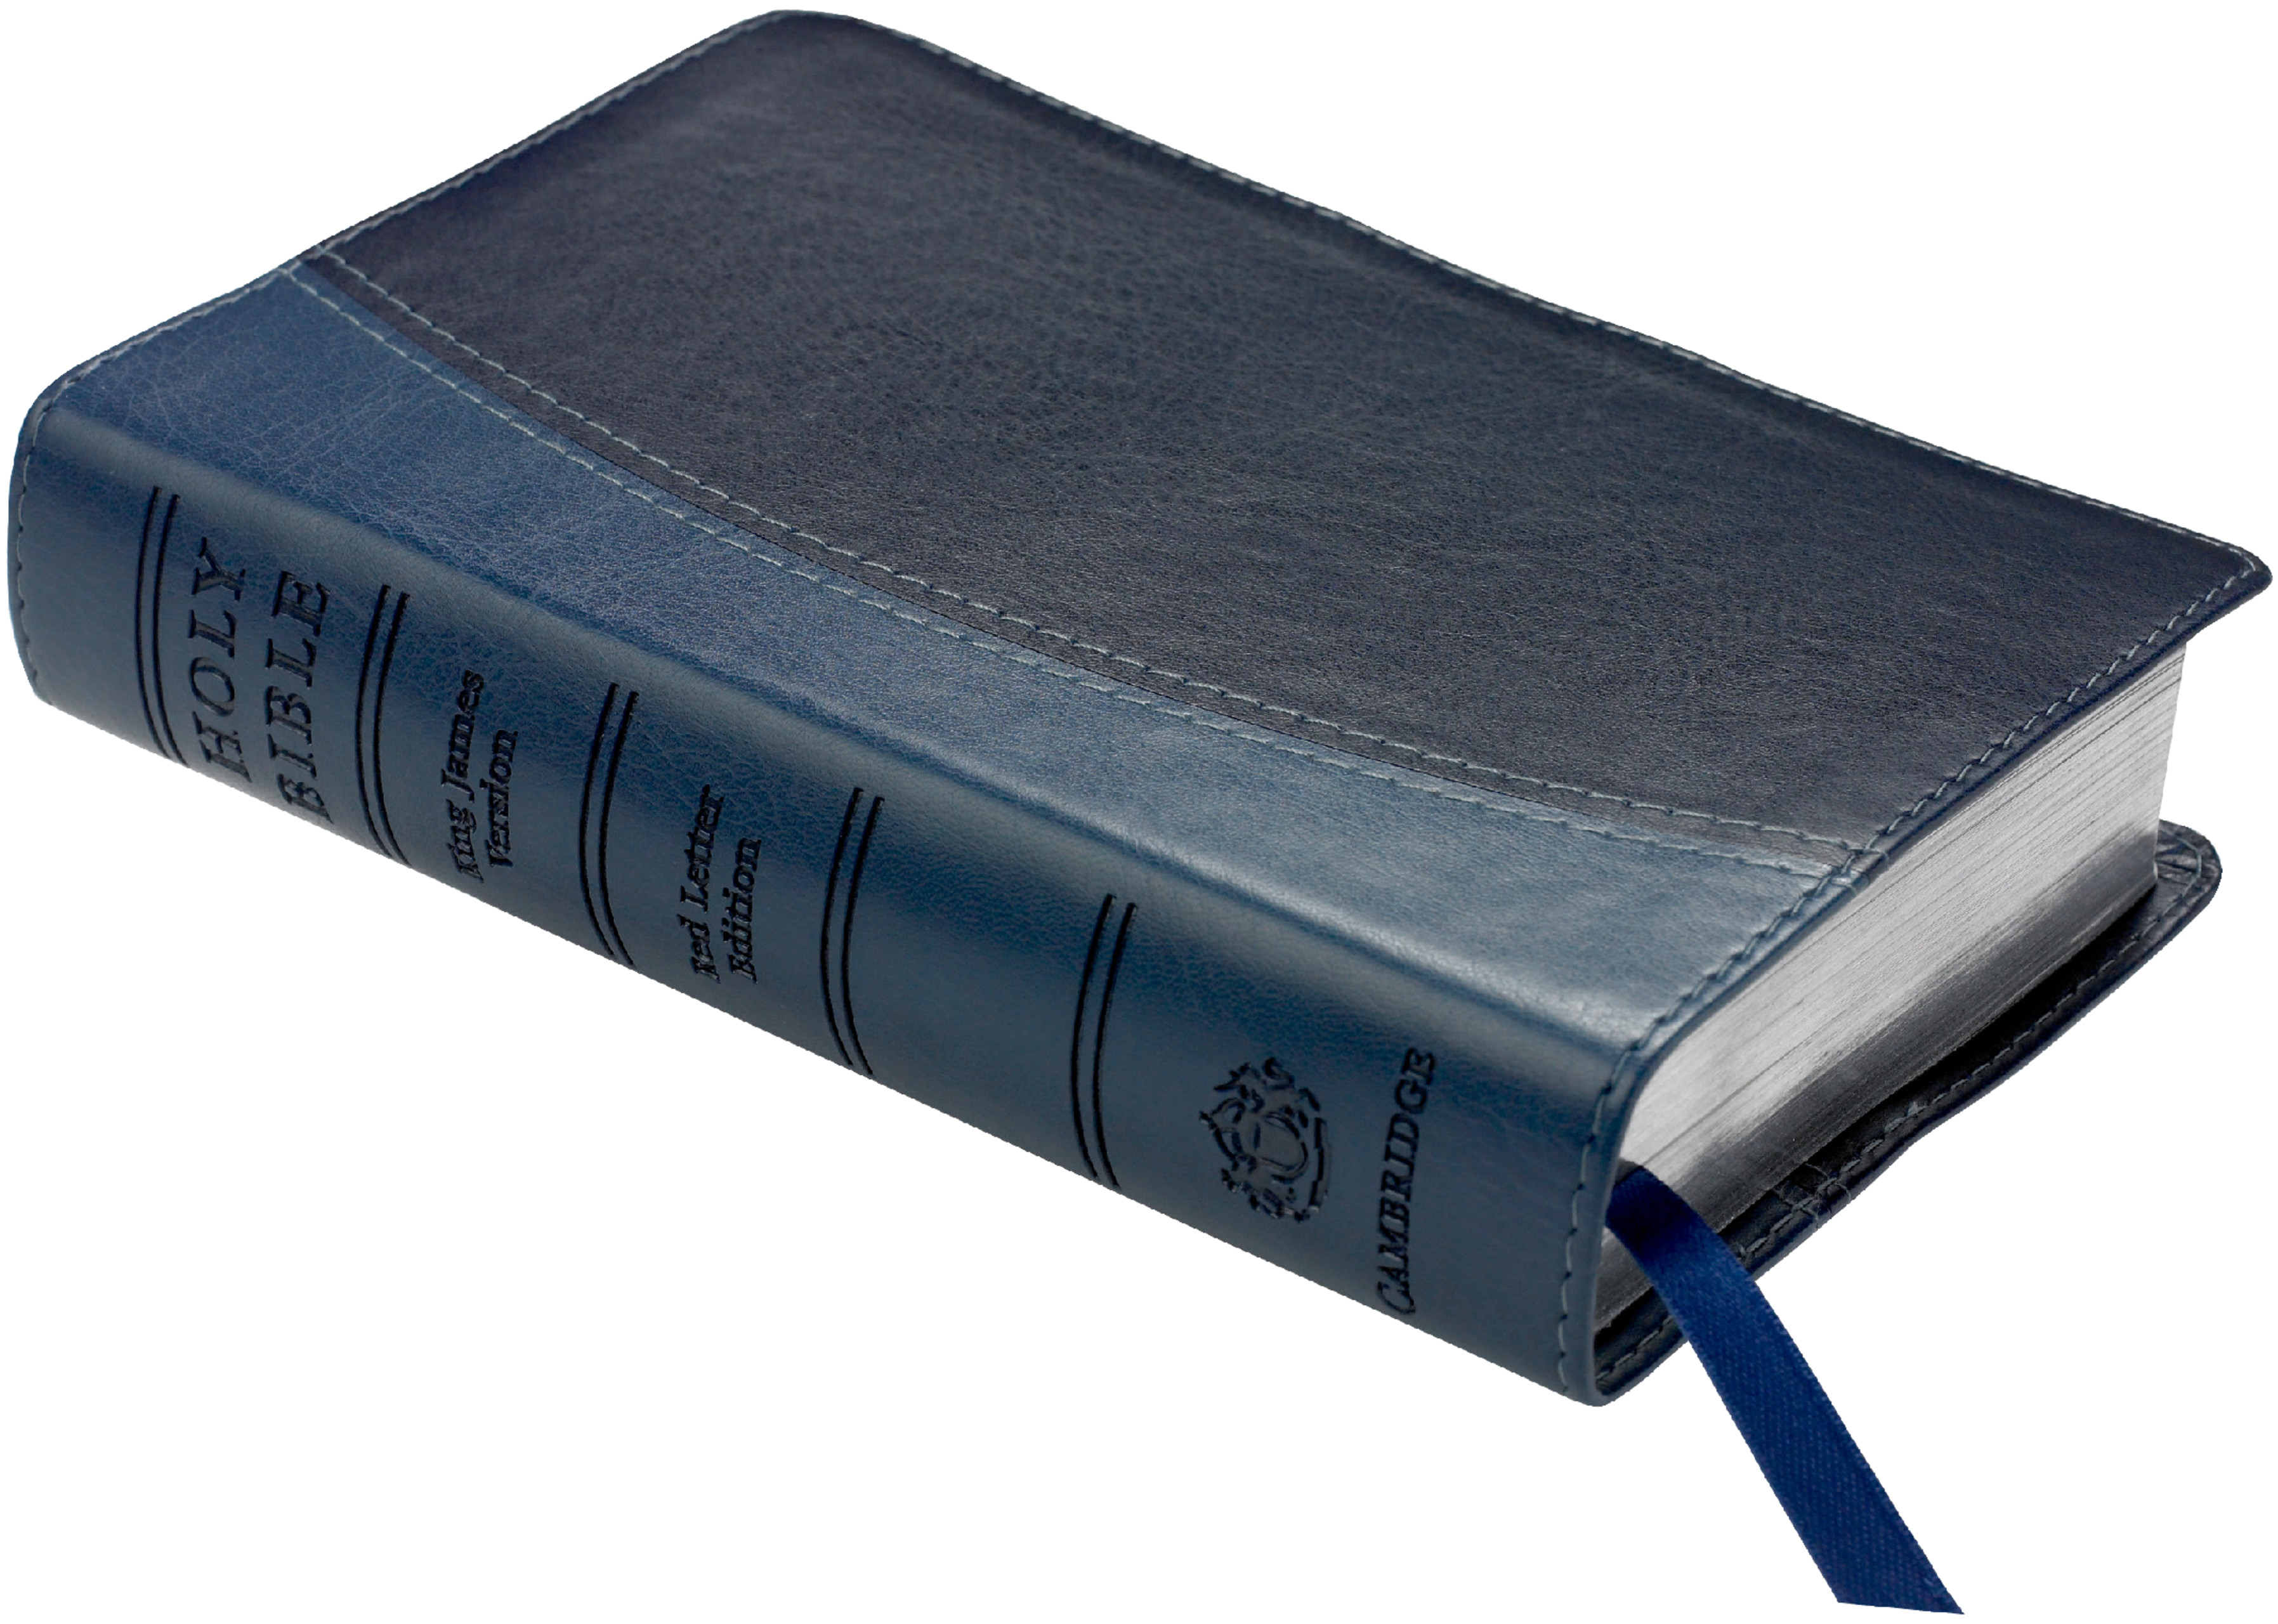 KJV Personal Concord Reference Edition KJ462:XR